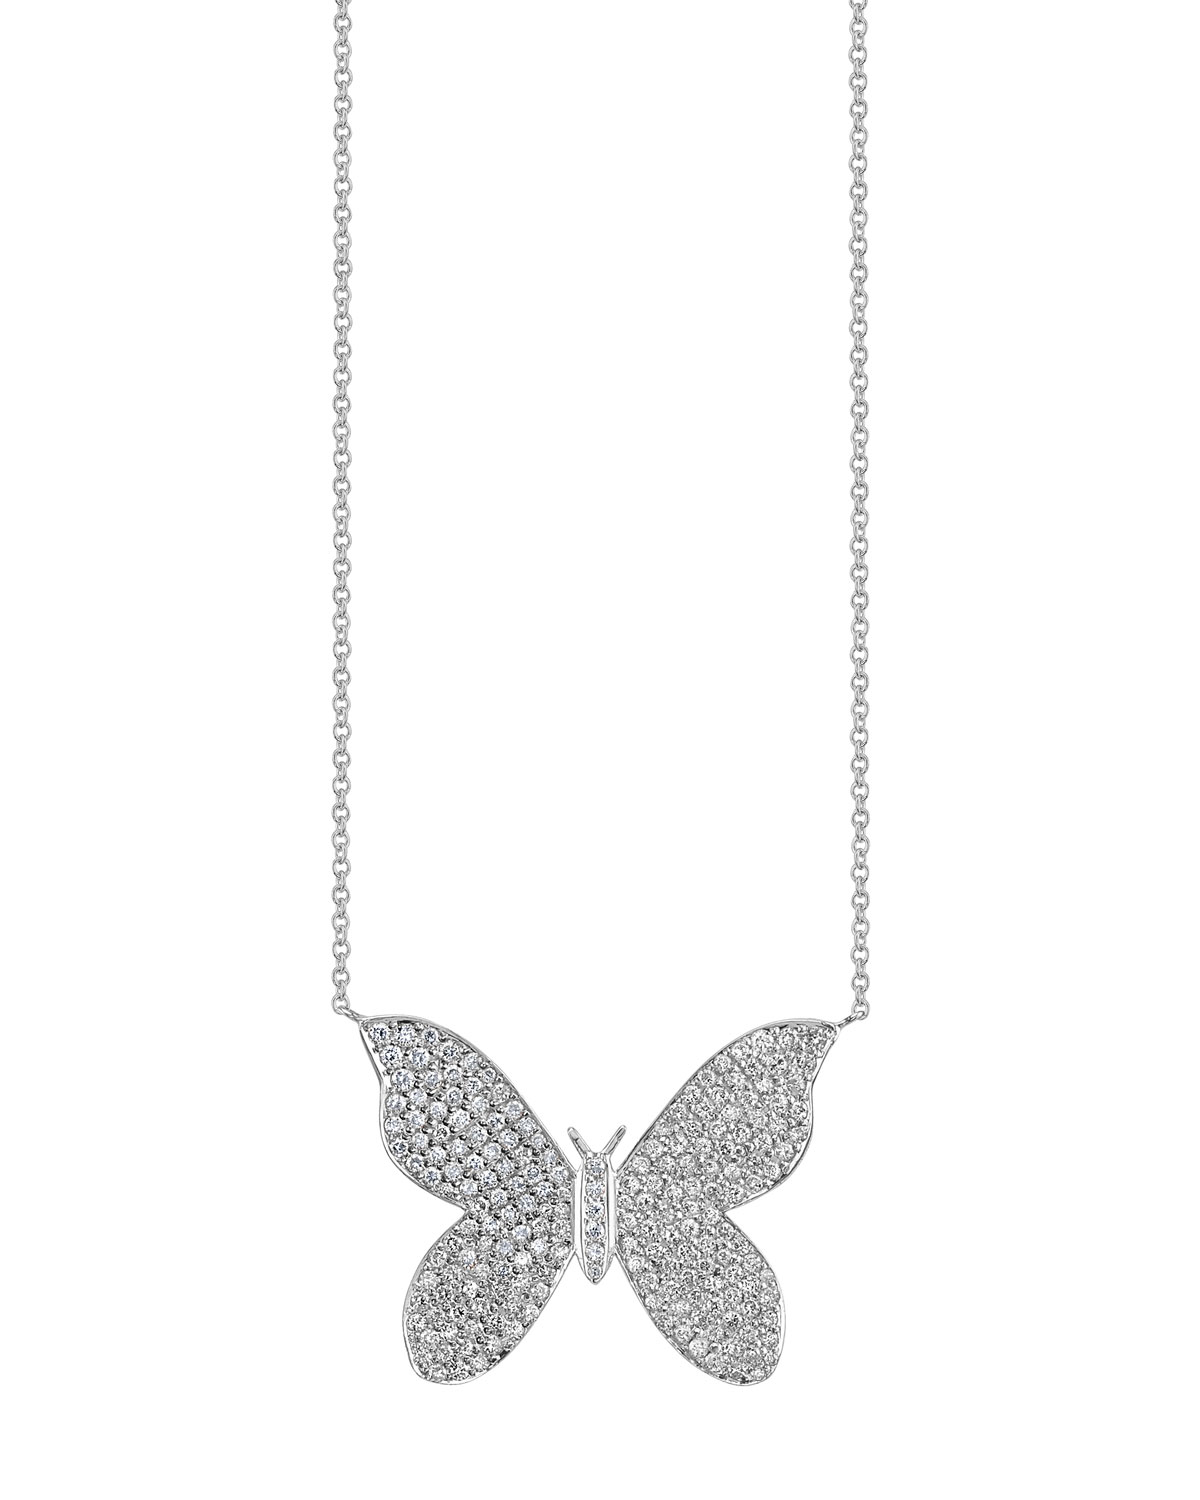 fc5812eaecf1b 14k White Gold Large Diamond Butterfly Necklace